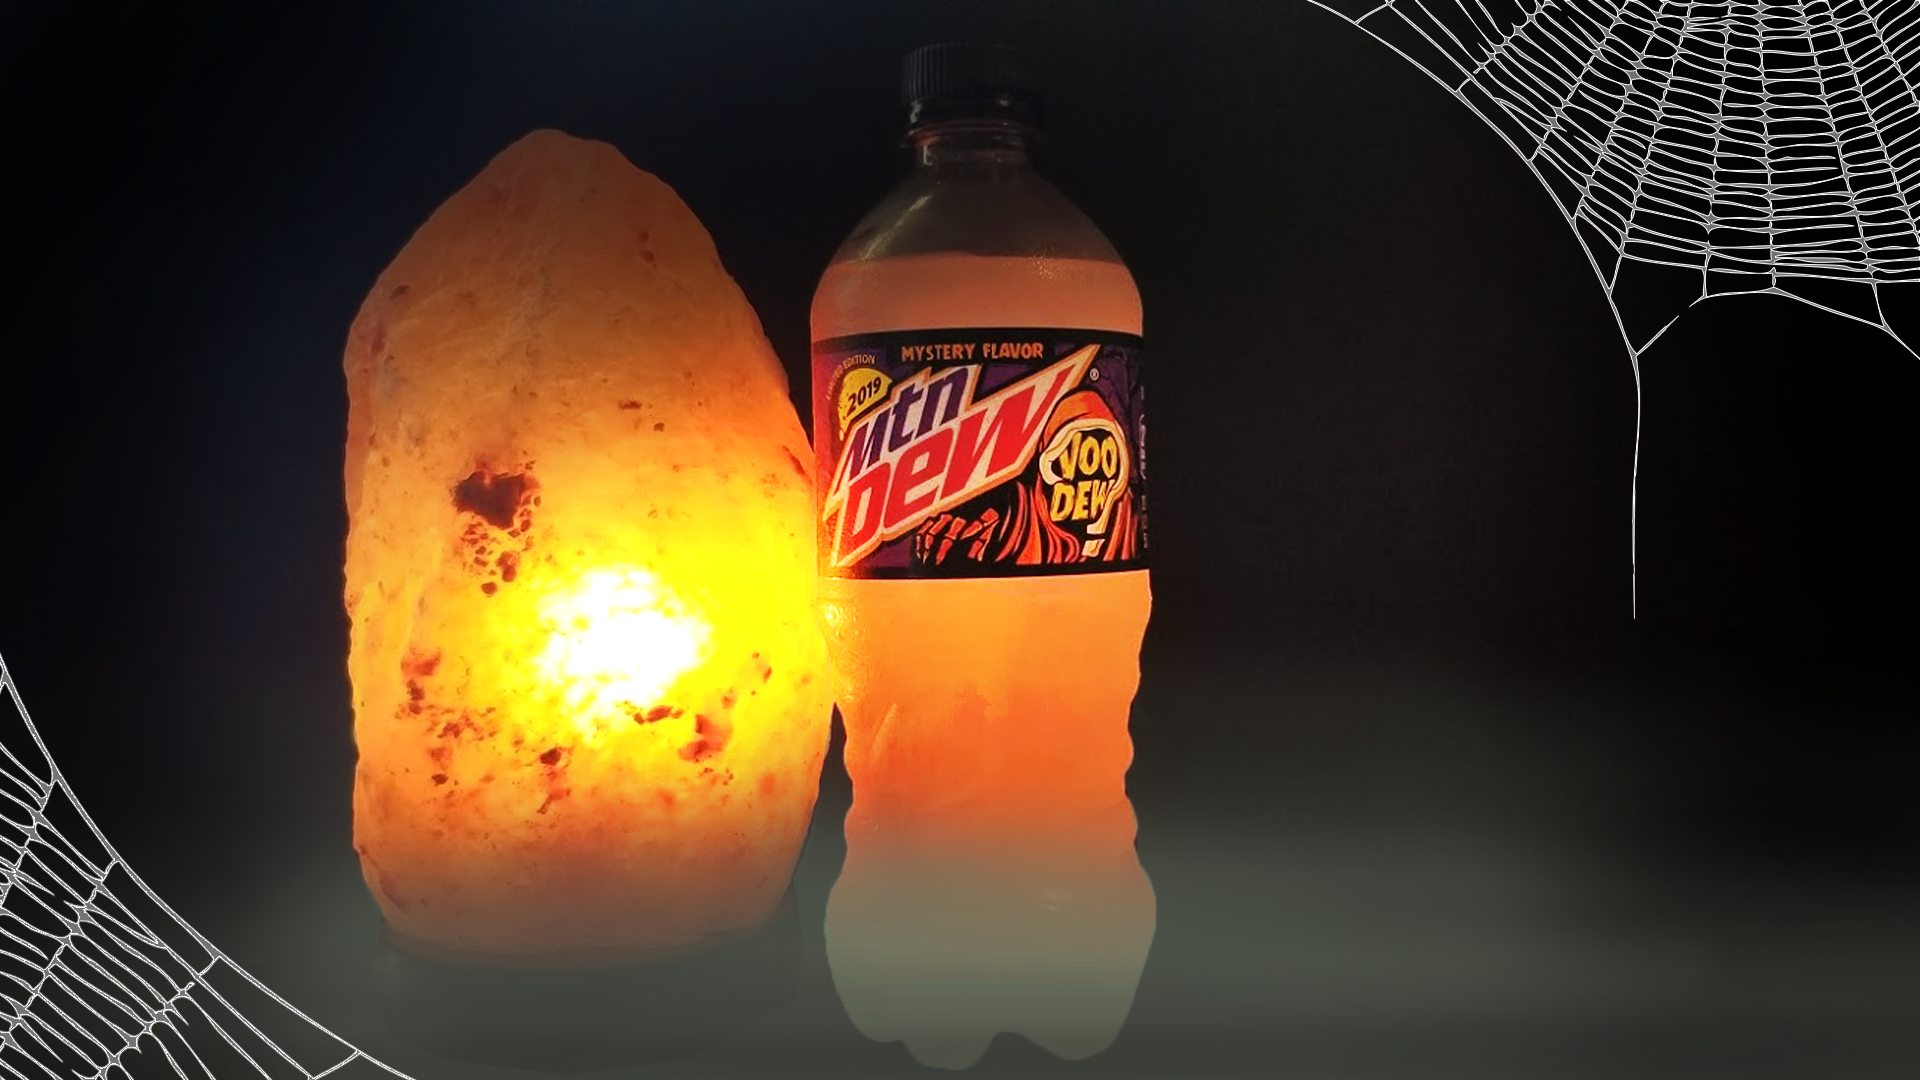 Mountain Dew VooDew Is A Tasty Way To Kick Off The Halloween Season